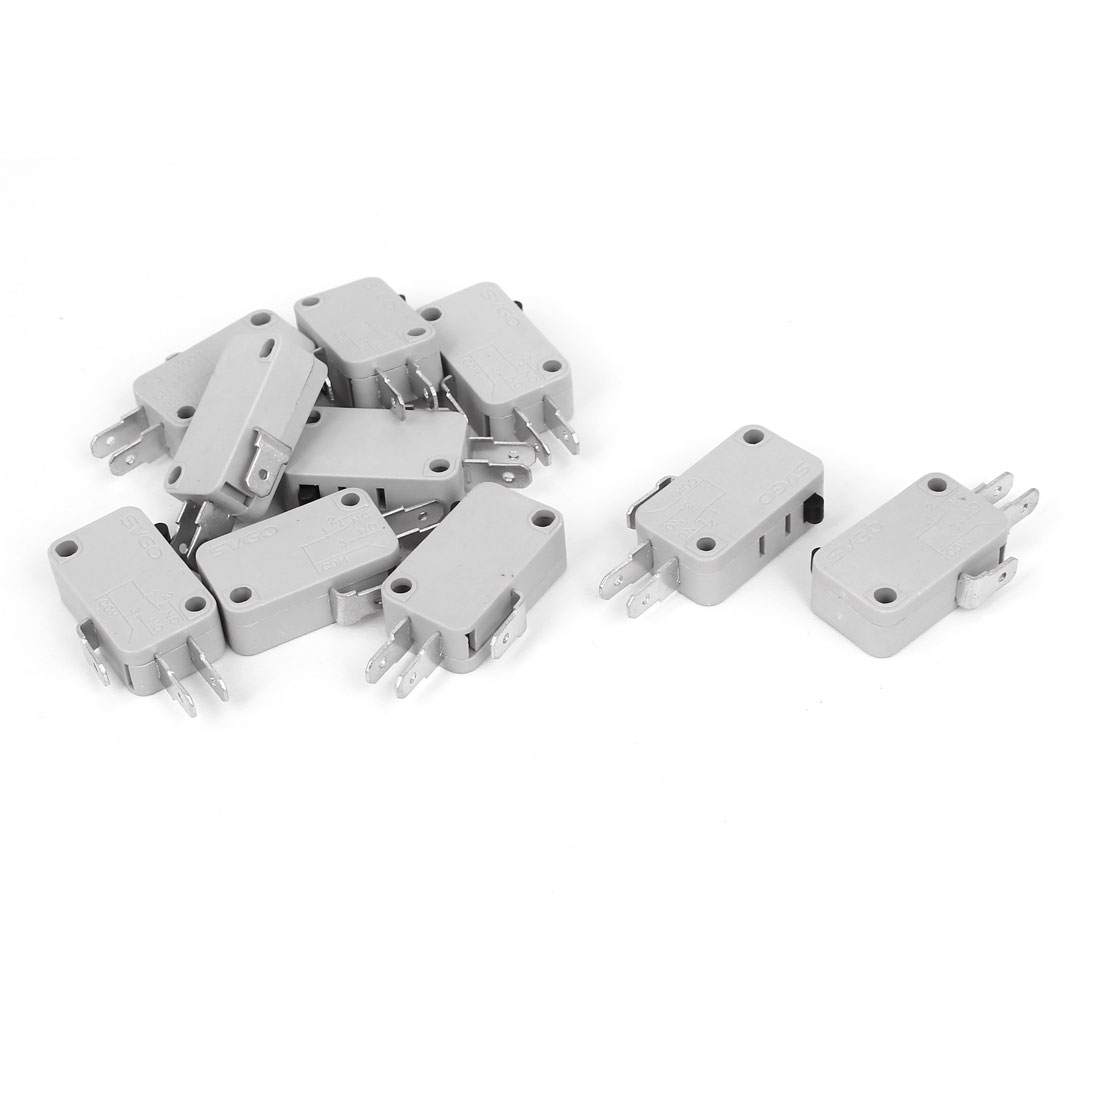 10 Pcs 250V 16A Snap Action Push Button SPDT Momentary Micro Limit Switch